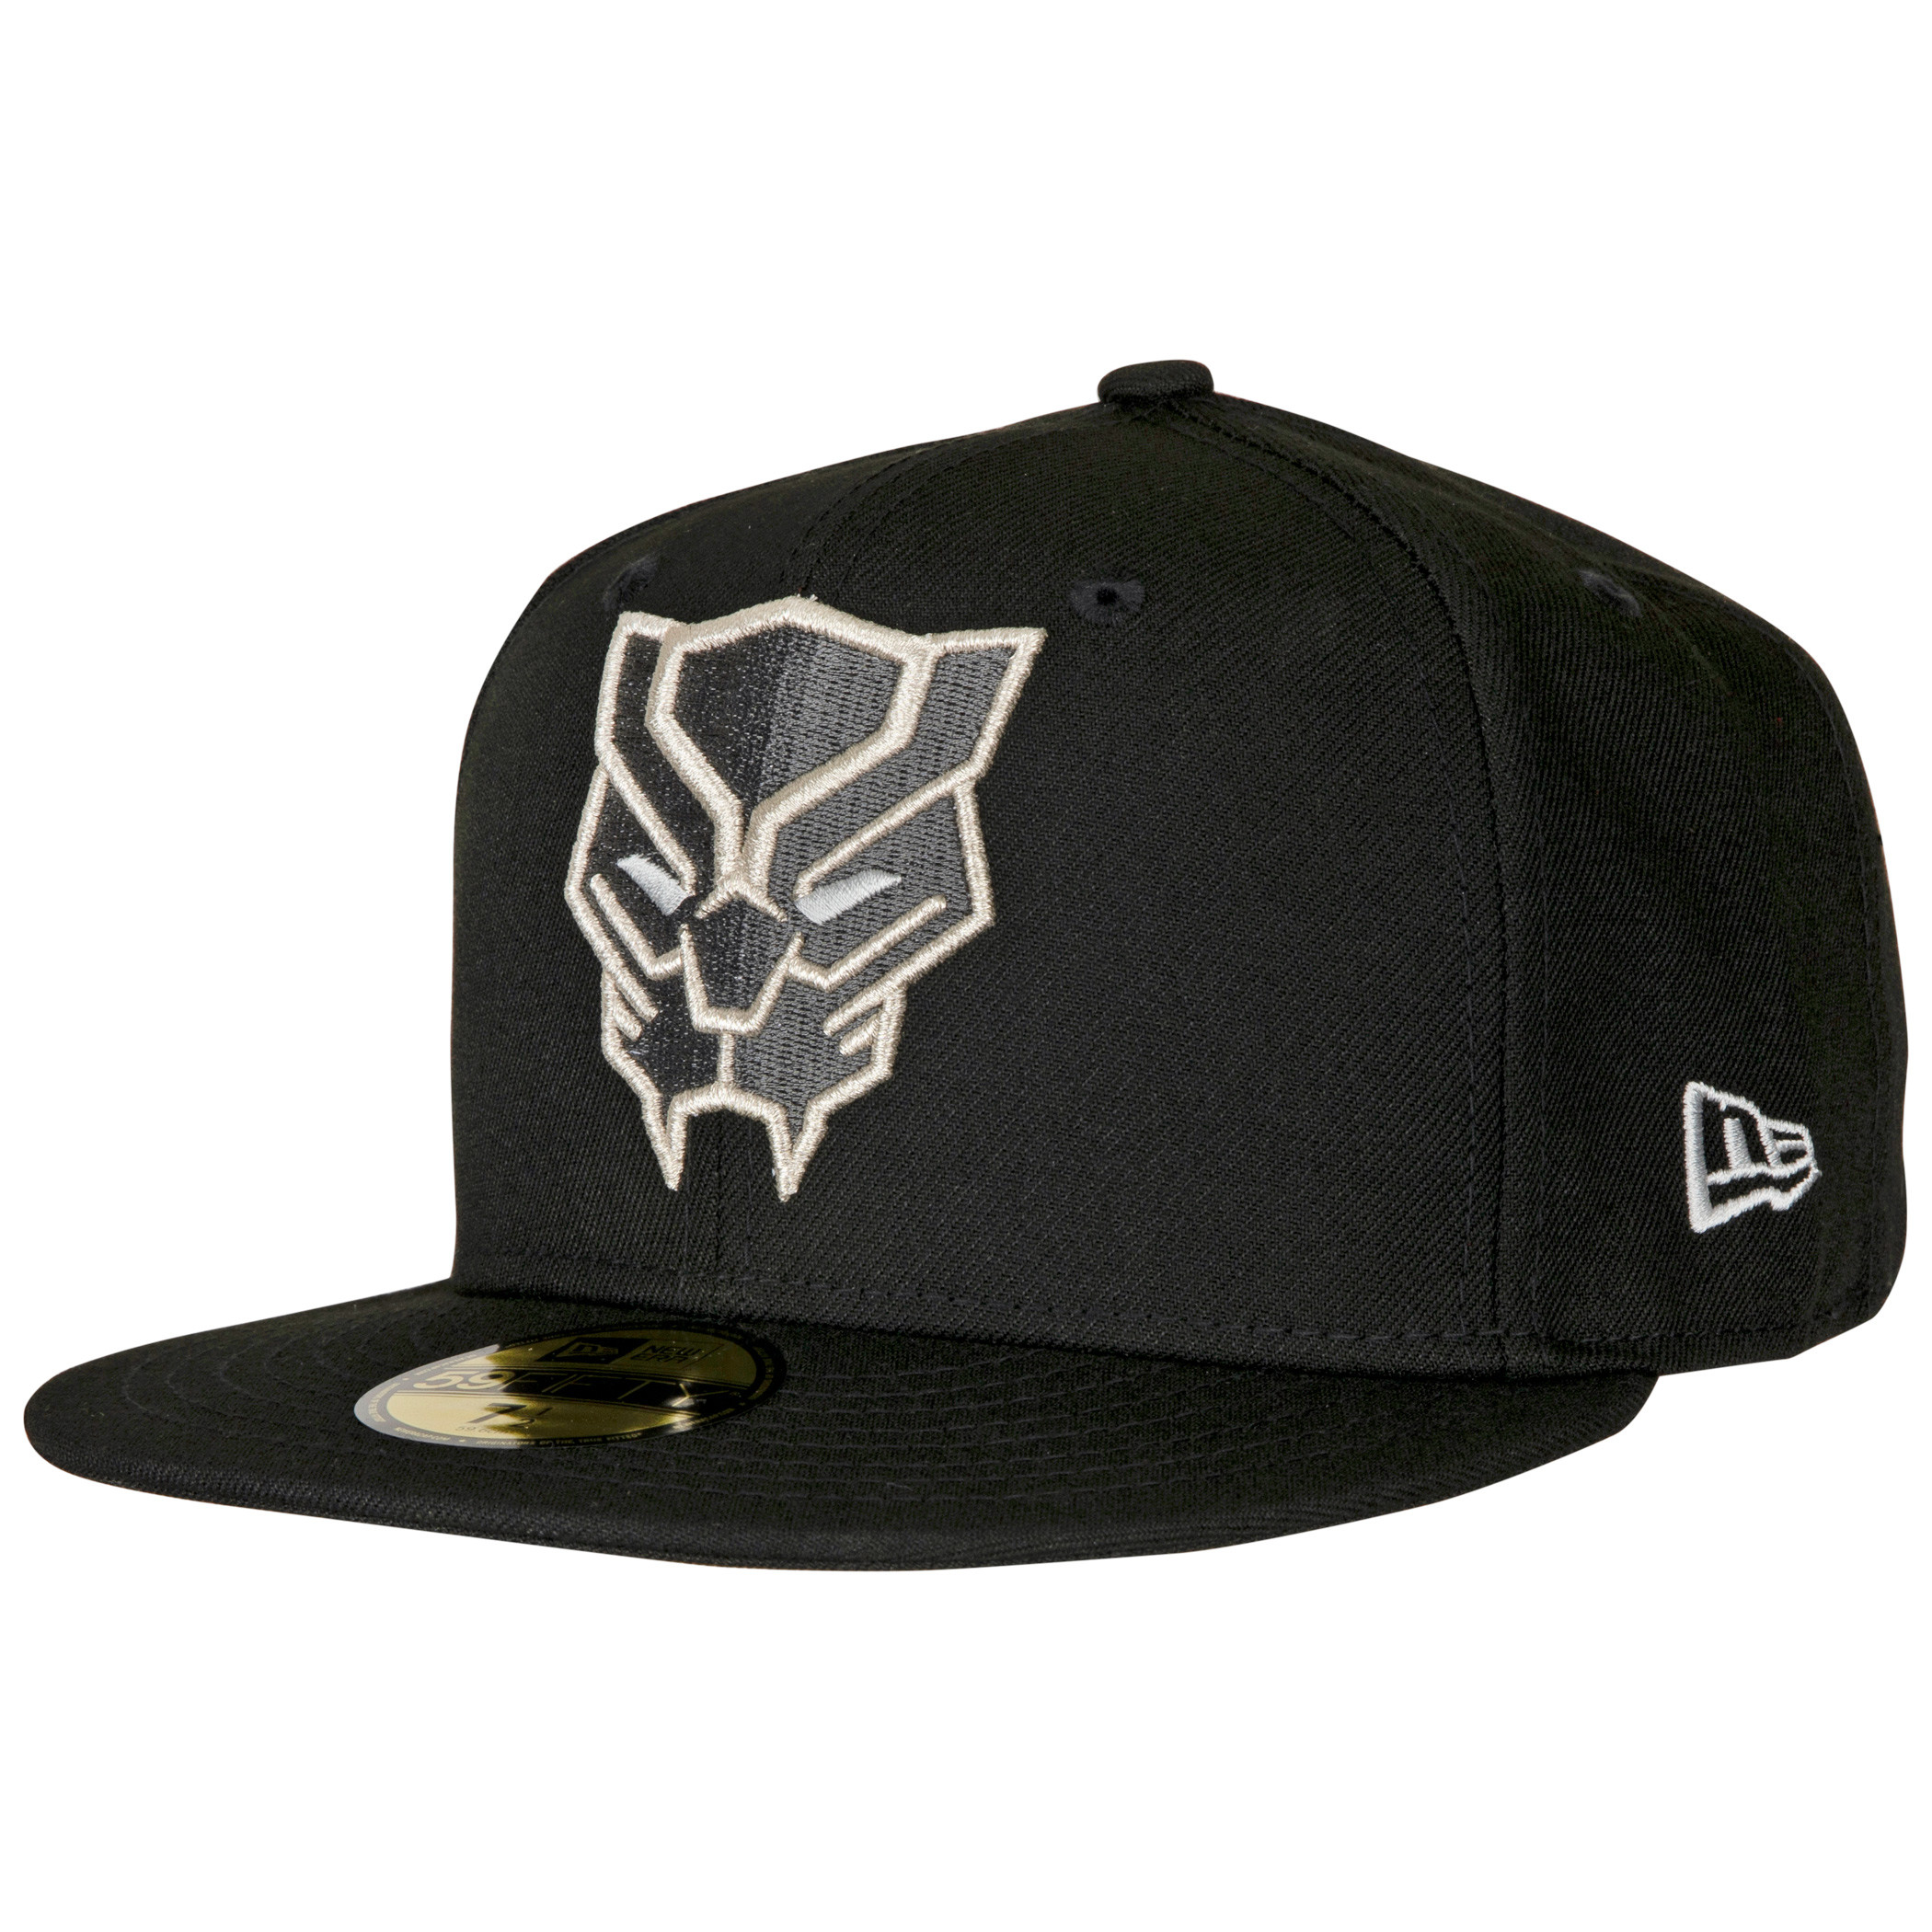 Black Panther Face Symbol Color Block New Era 59Fifty Fitted Hat